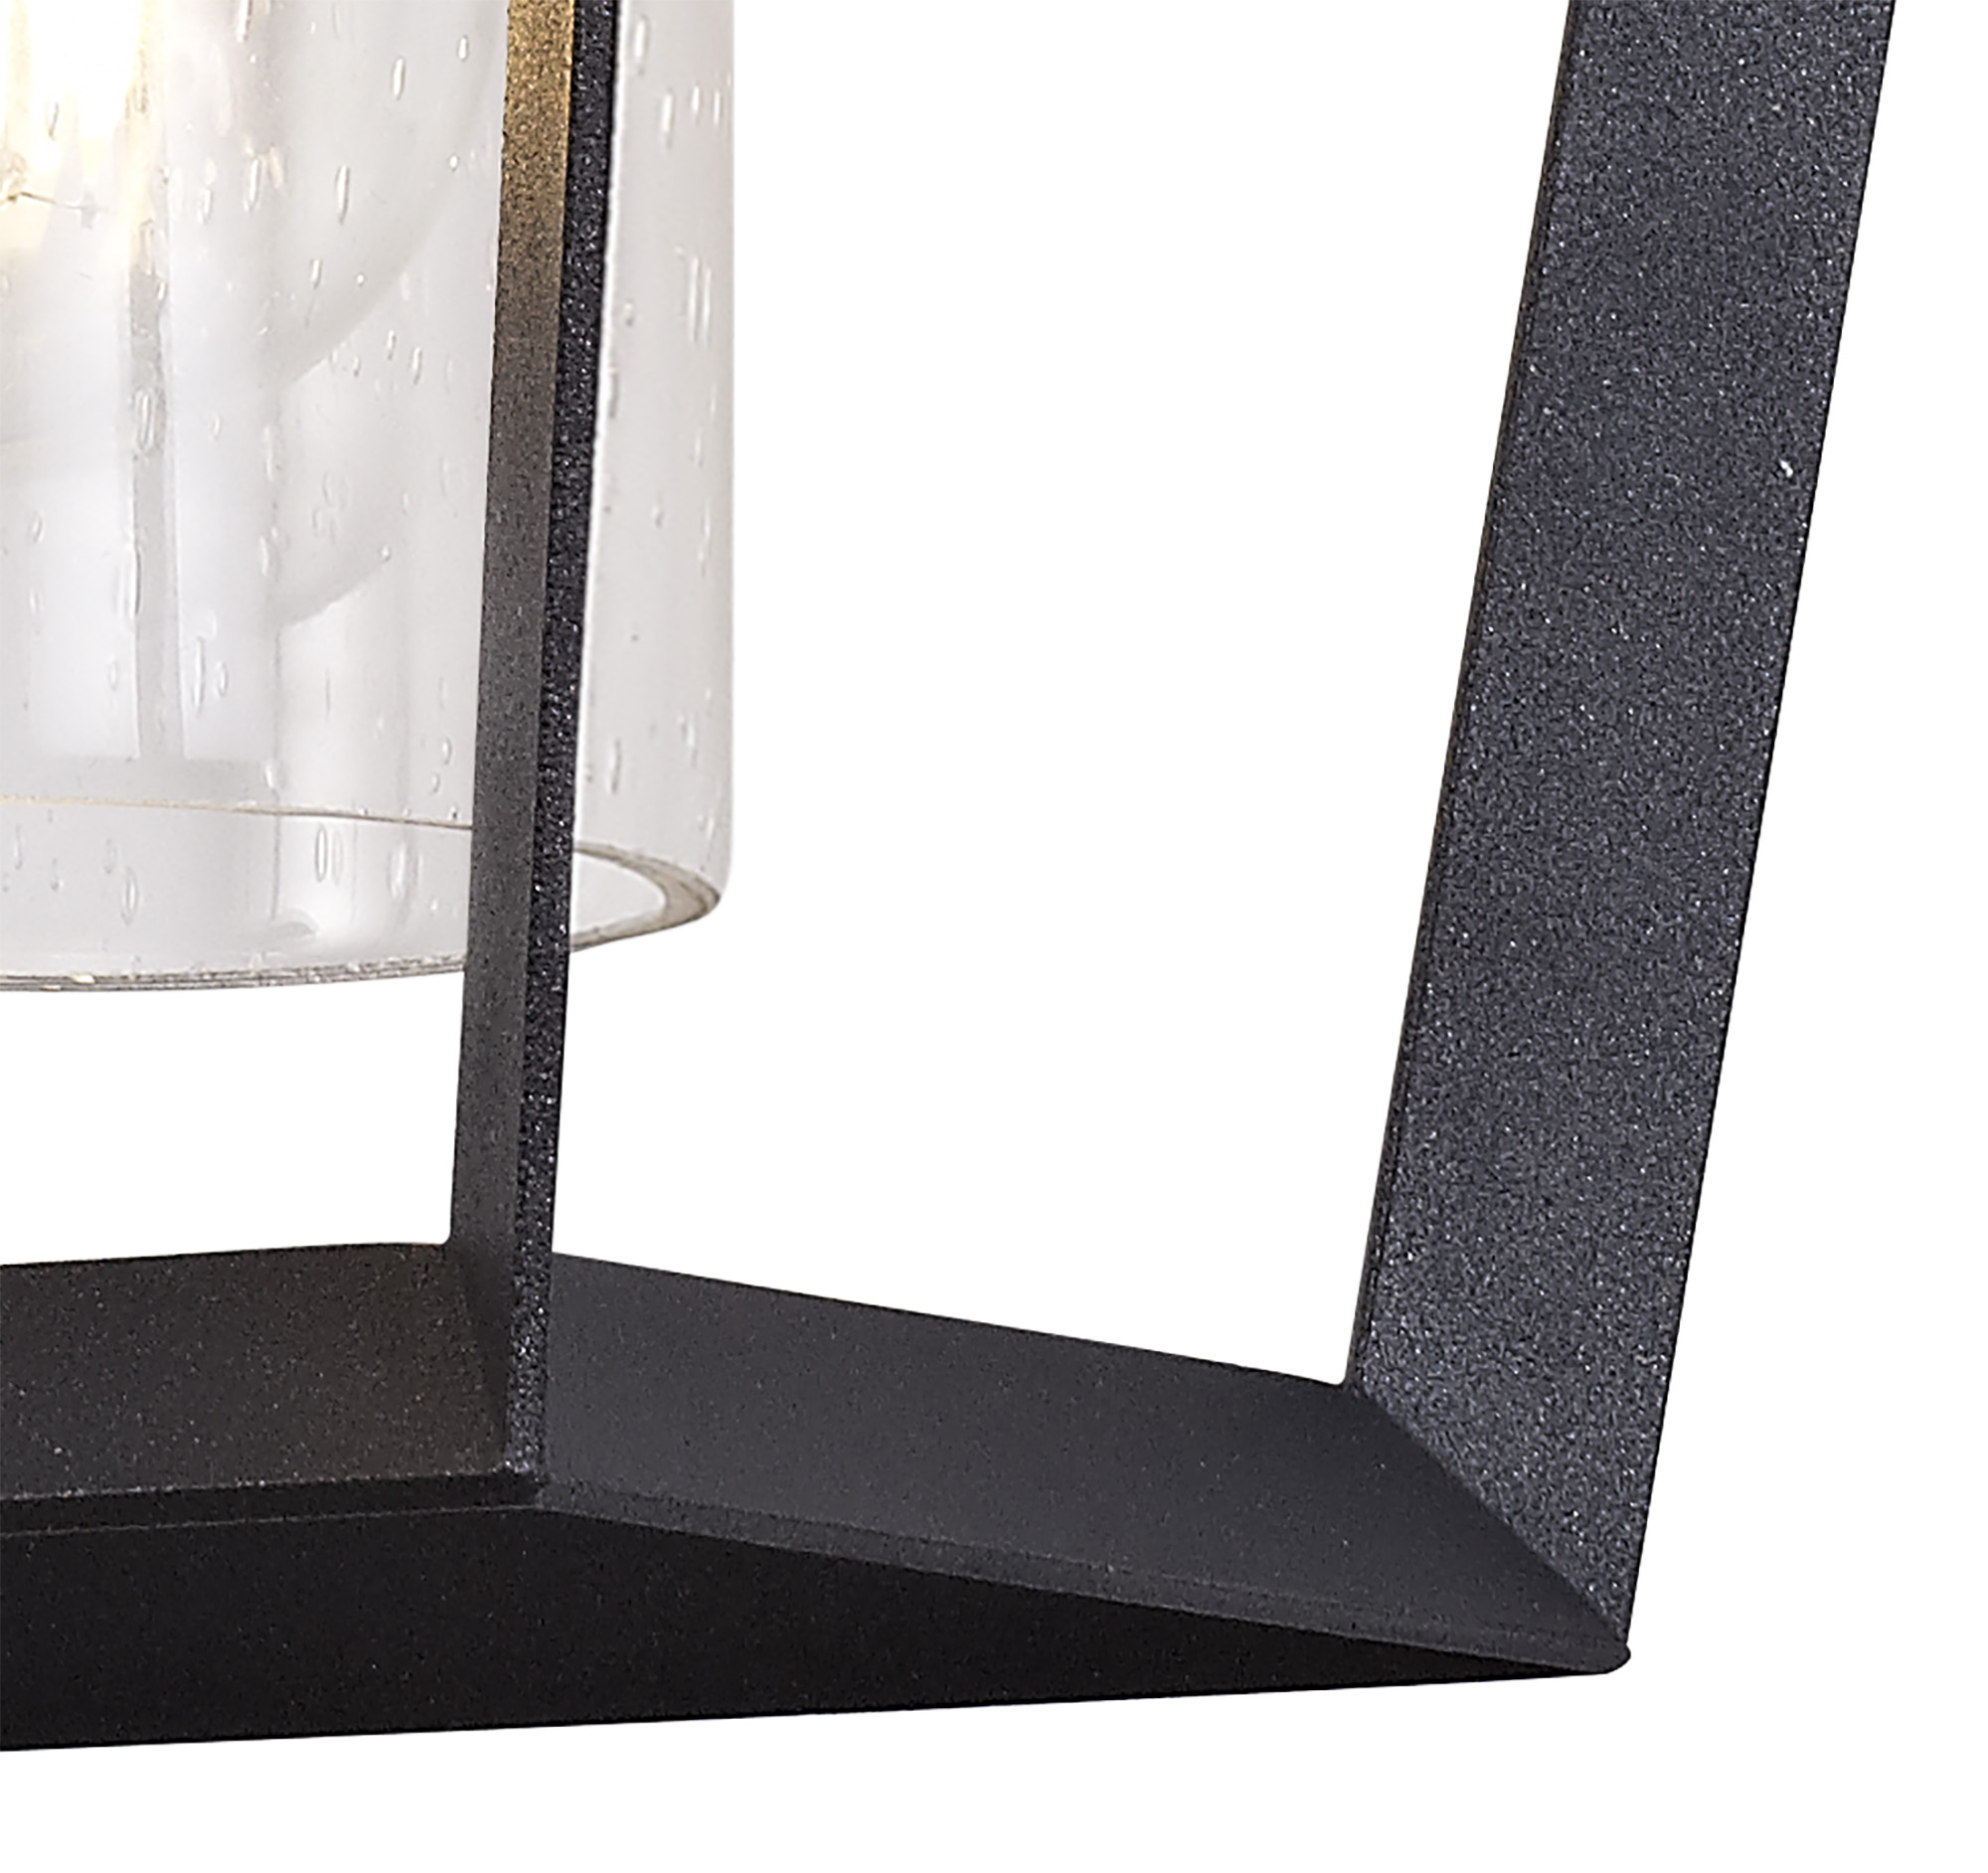 Down Wall Lamp, 1 x E27, IP54, Anthracite/Clear Rain Drop Effect Glass, 2yrs Warranty